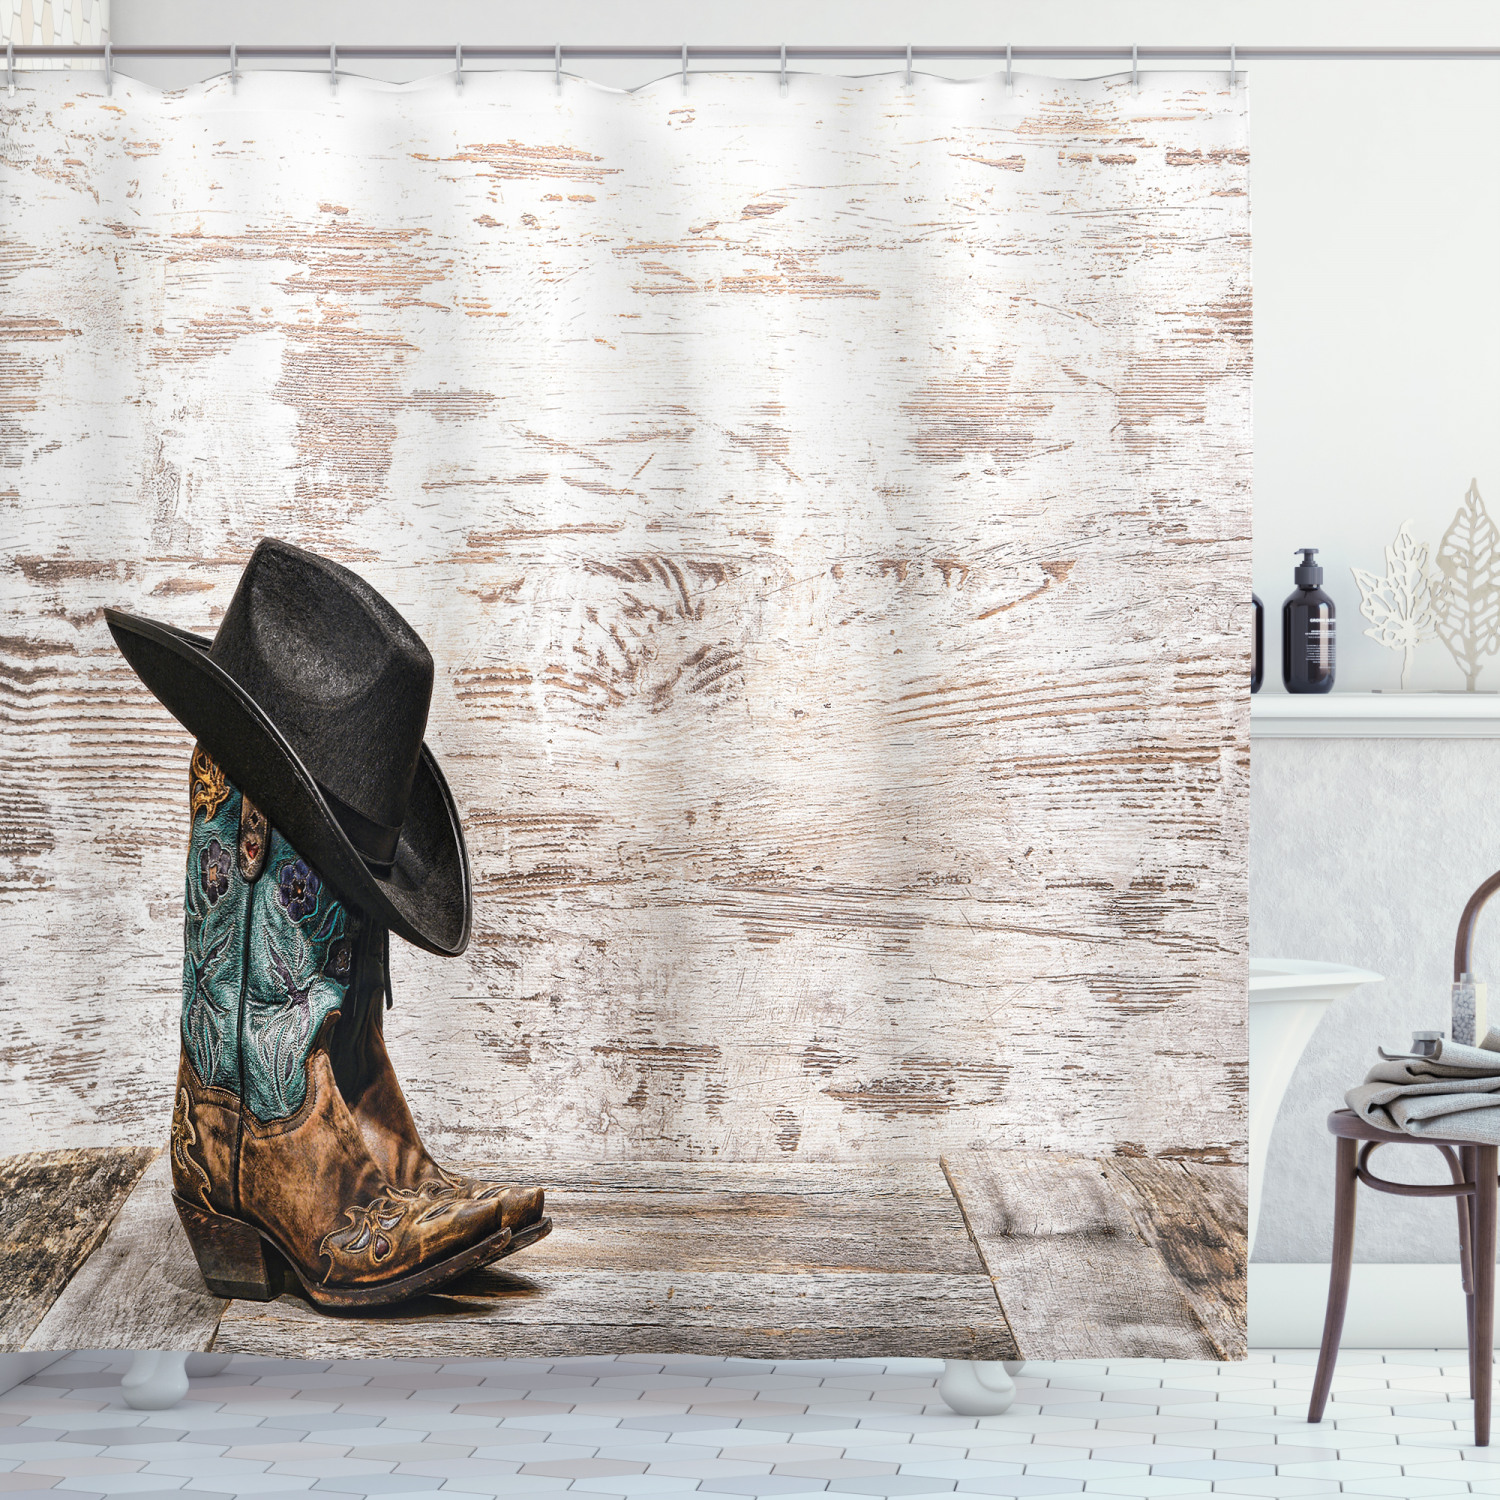 Western Decor Shower Curtain Set Traditional Rodeo Cowboy Hat And Cowgirl Boots In A Retro Grunge Background Art Photo Bathroom Accessories 69w X 70l Inches By Ambesonne Walmart Com Walmart Com